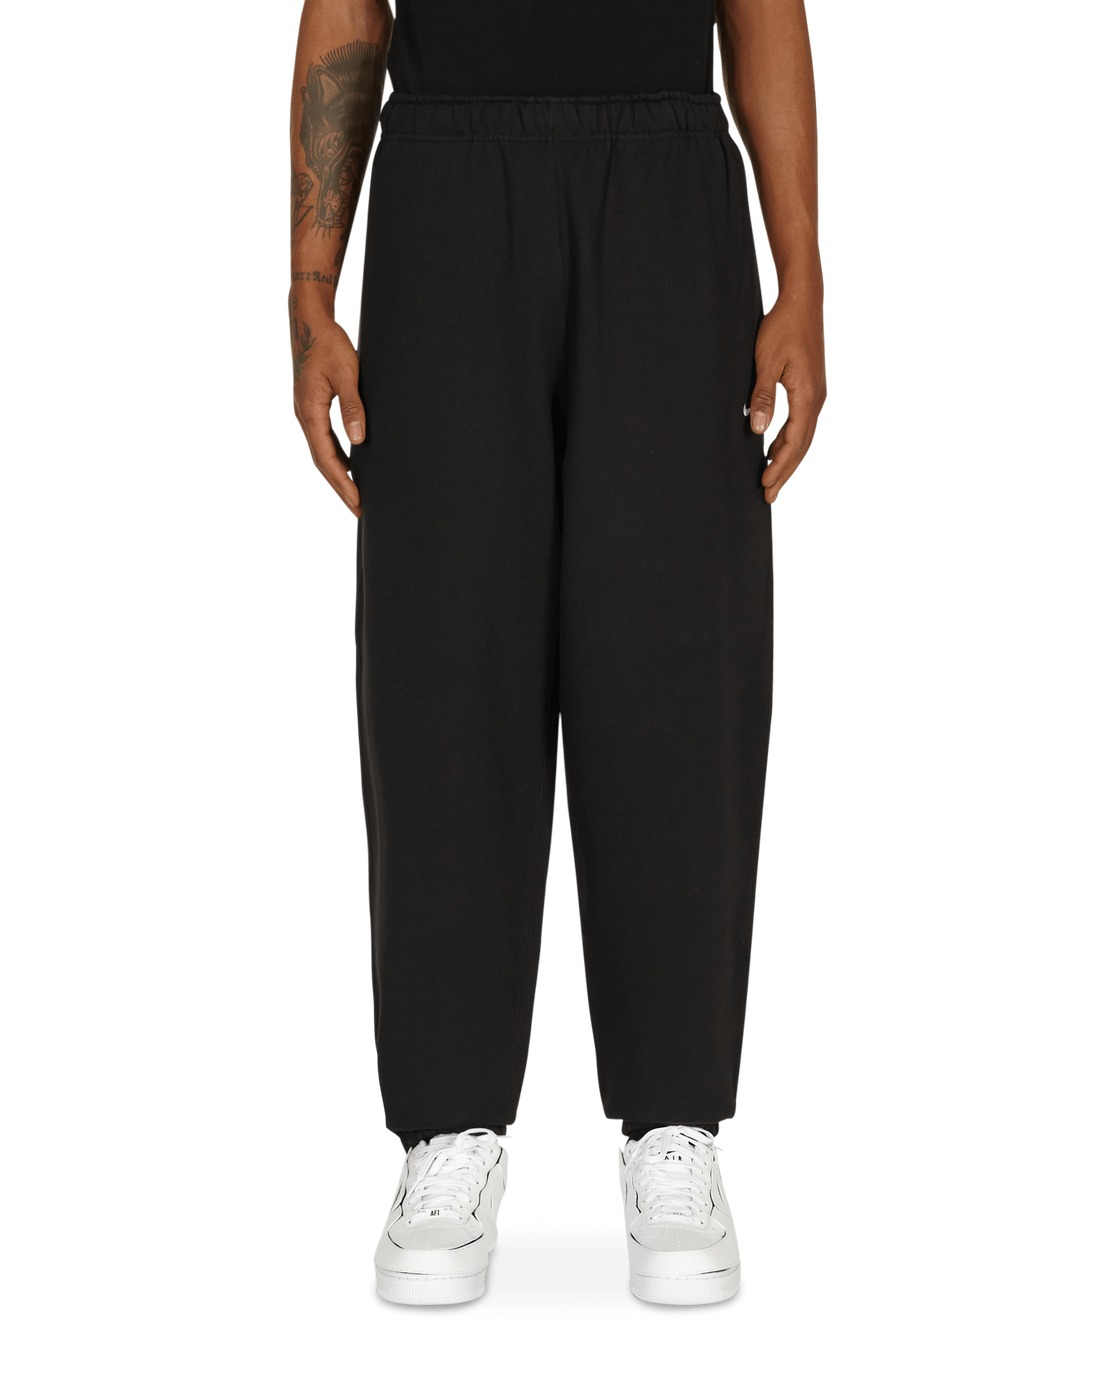 Nike Special Project Logo Sweatpants Black/White